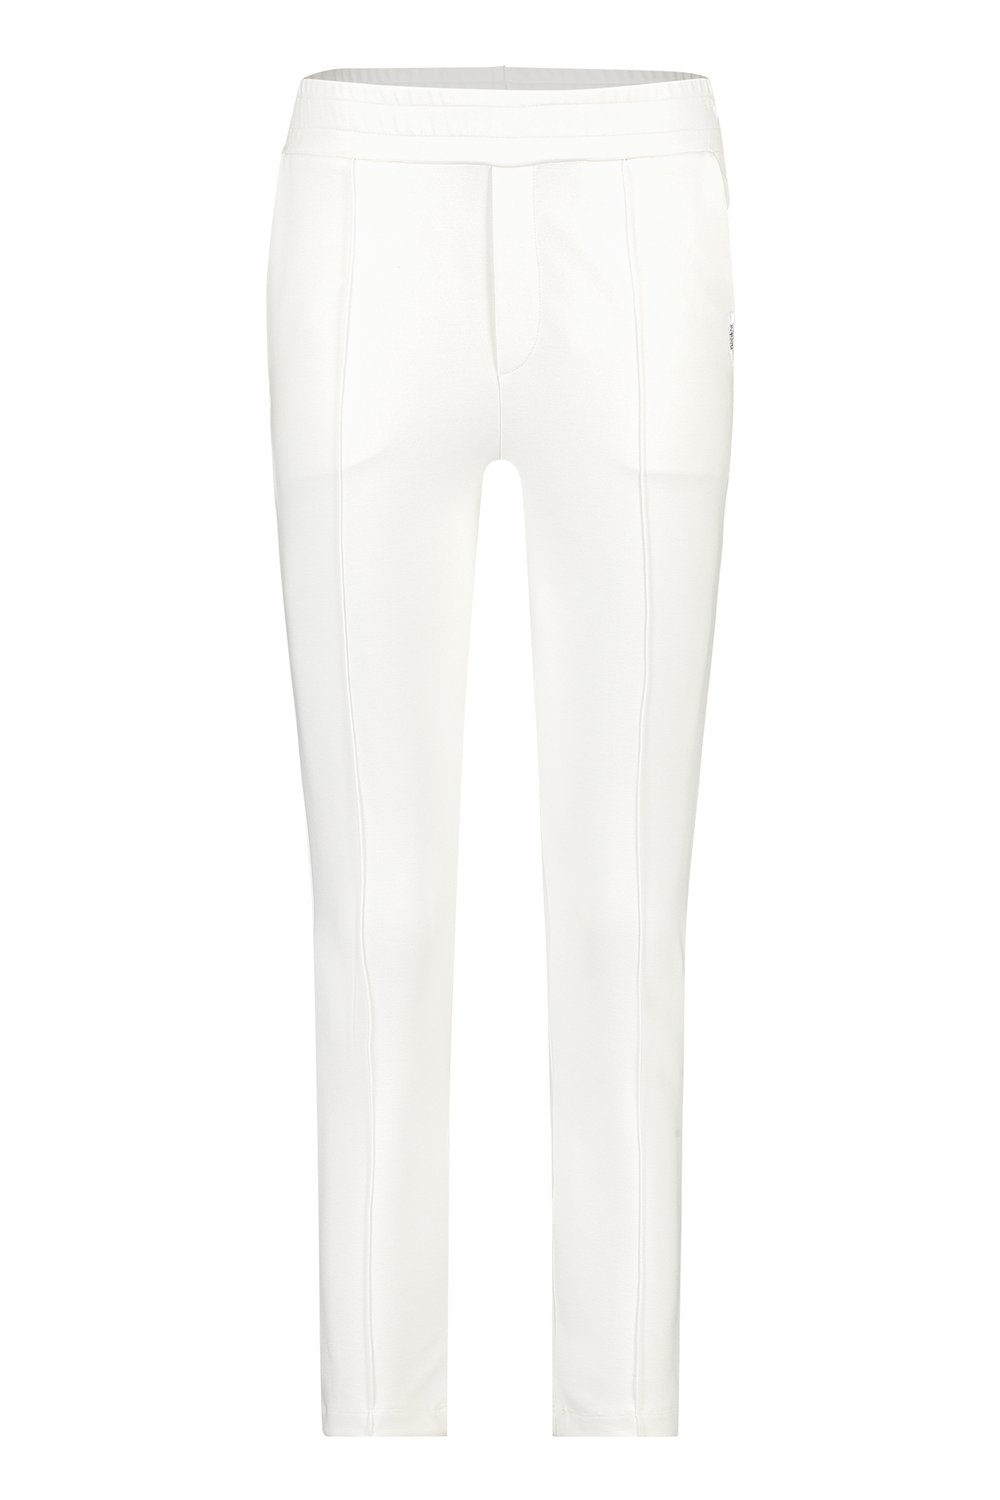 Witte dames jogging pantalon Penn & Ink - W19T314LTD